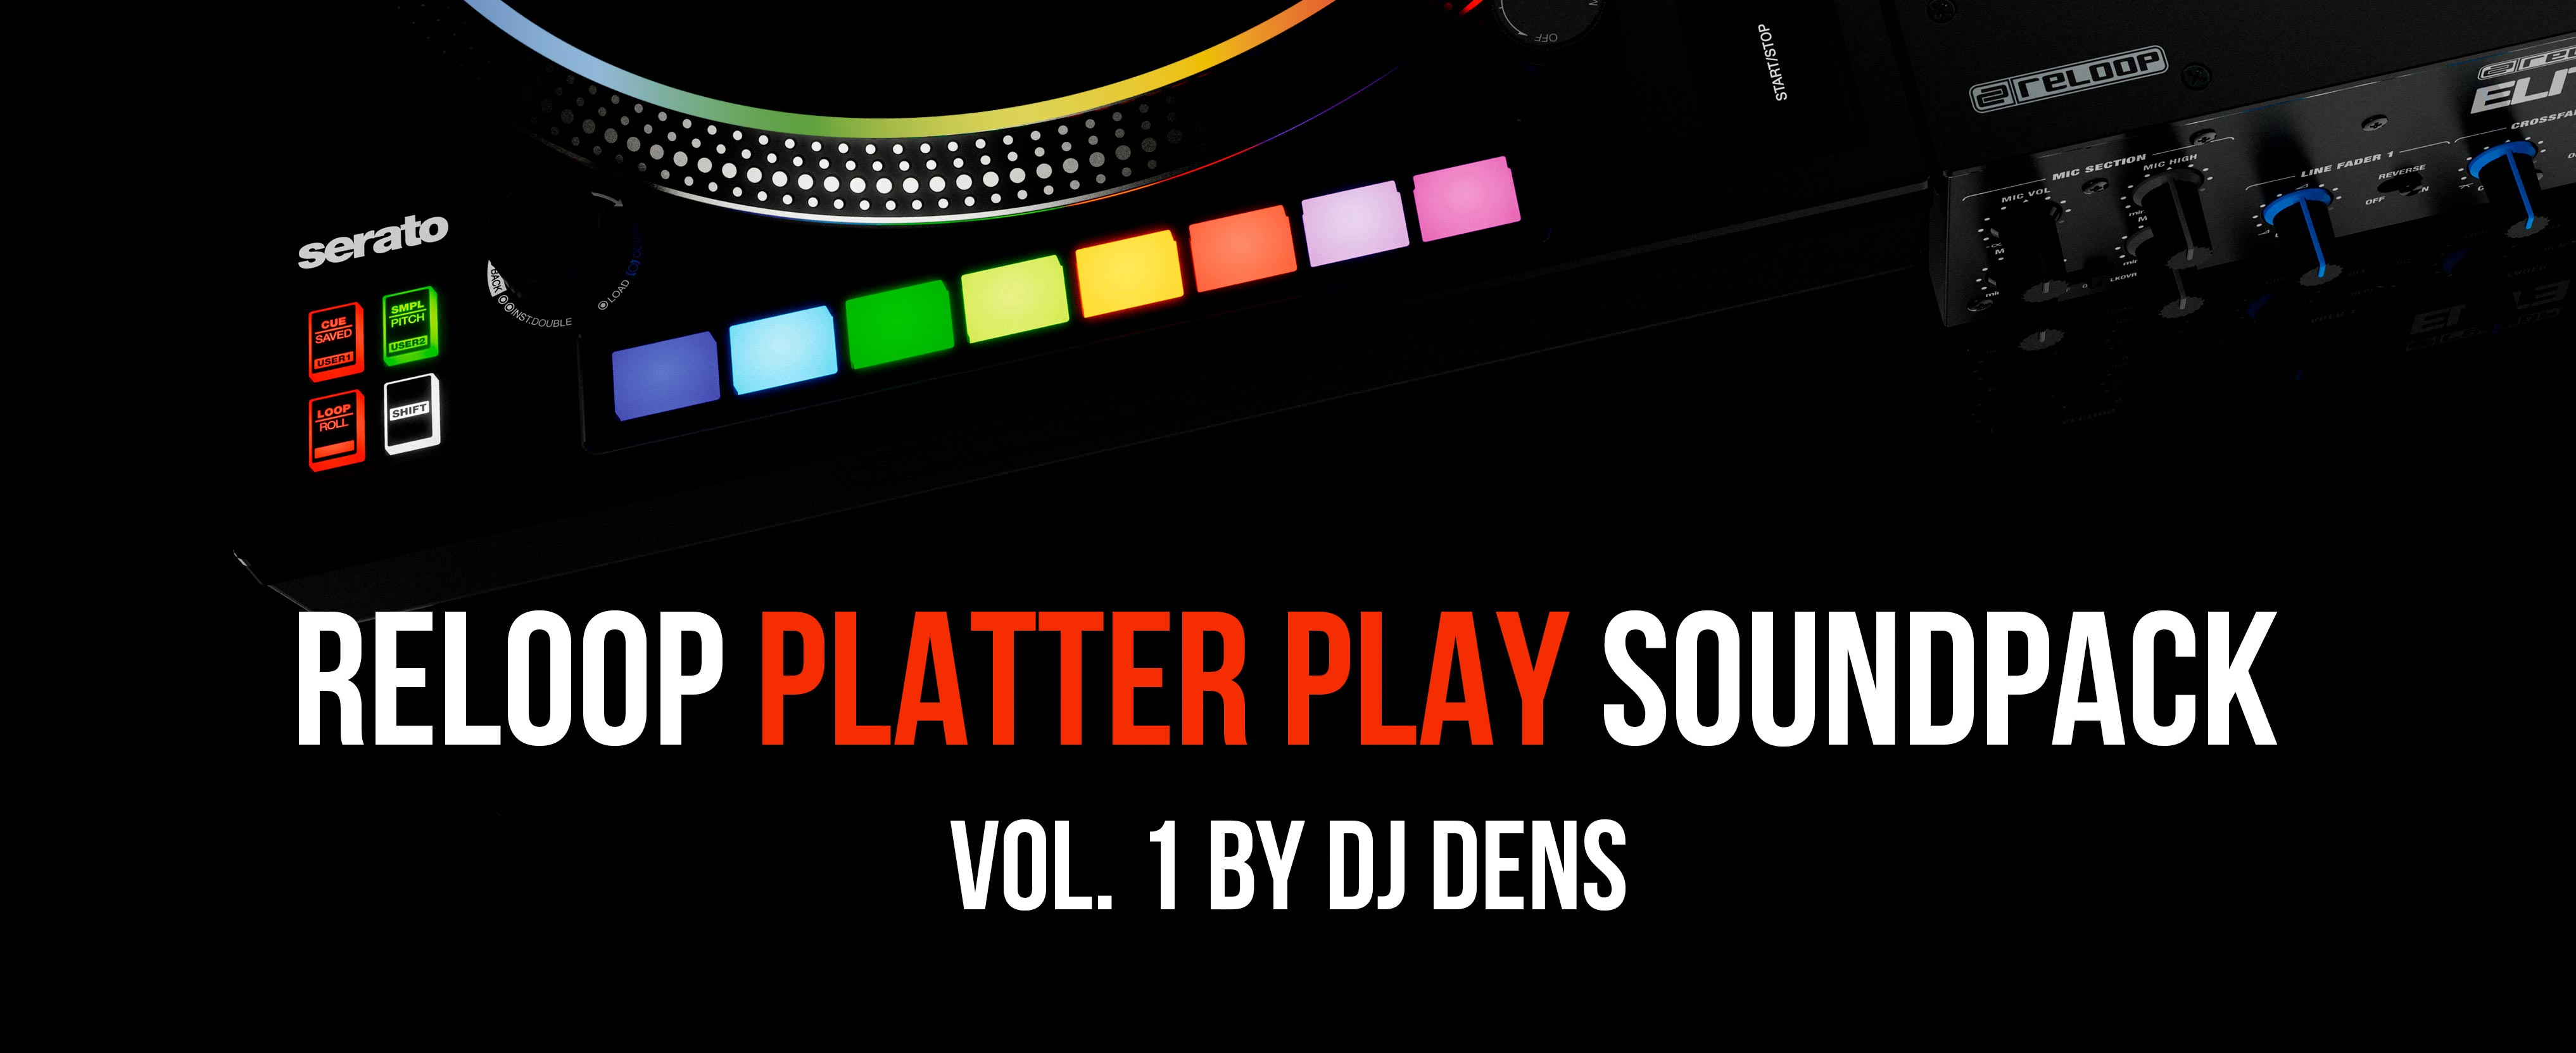 Reloop Platter Play Soundpack Vol. 1 by DJ Dens